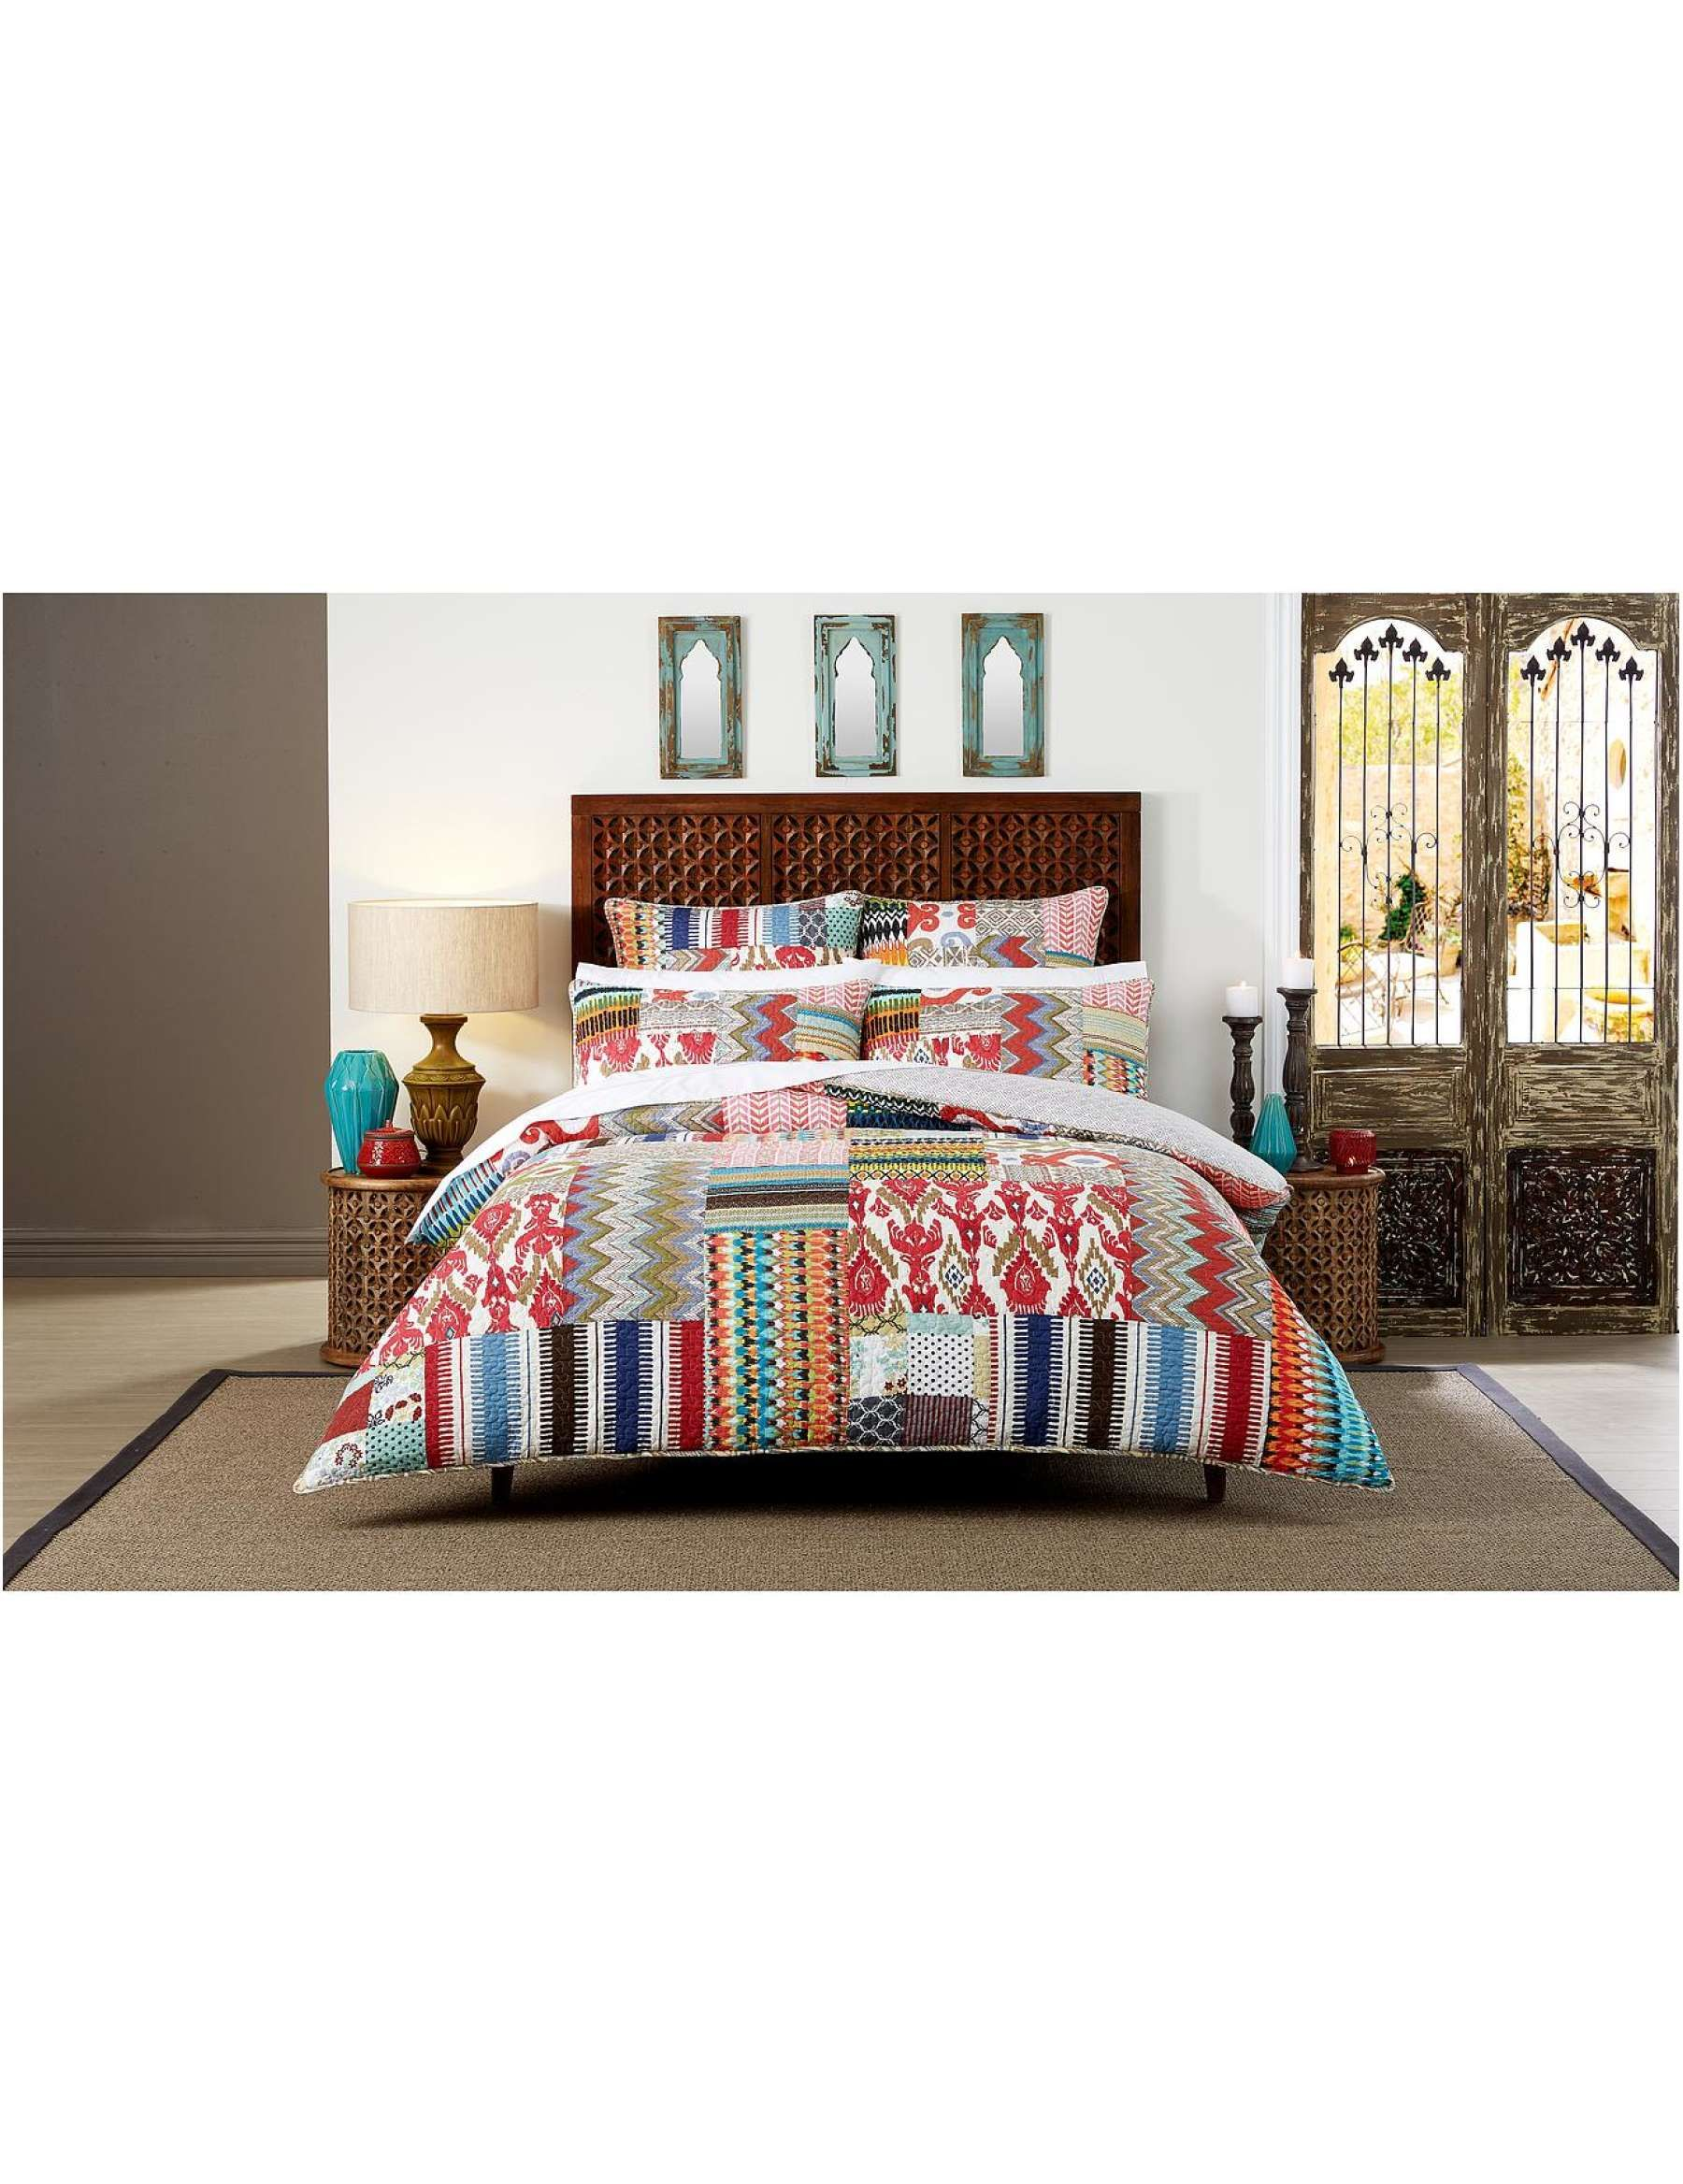 David Jones Cotton House Aletta Double Bed Quilt Cover